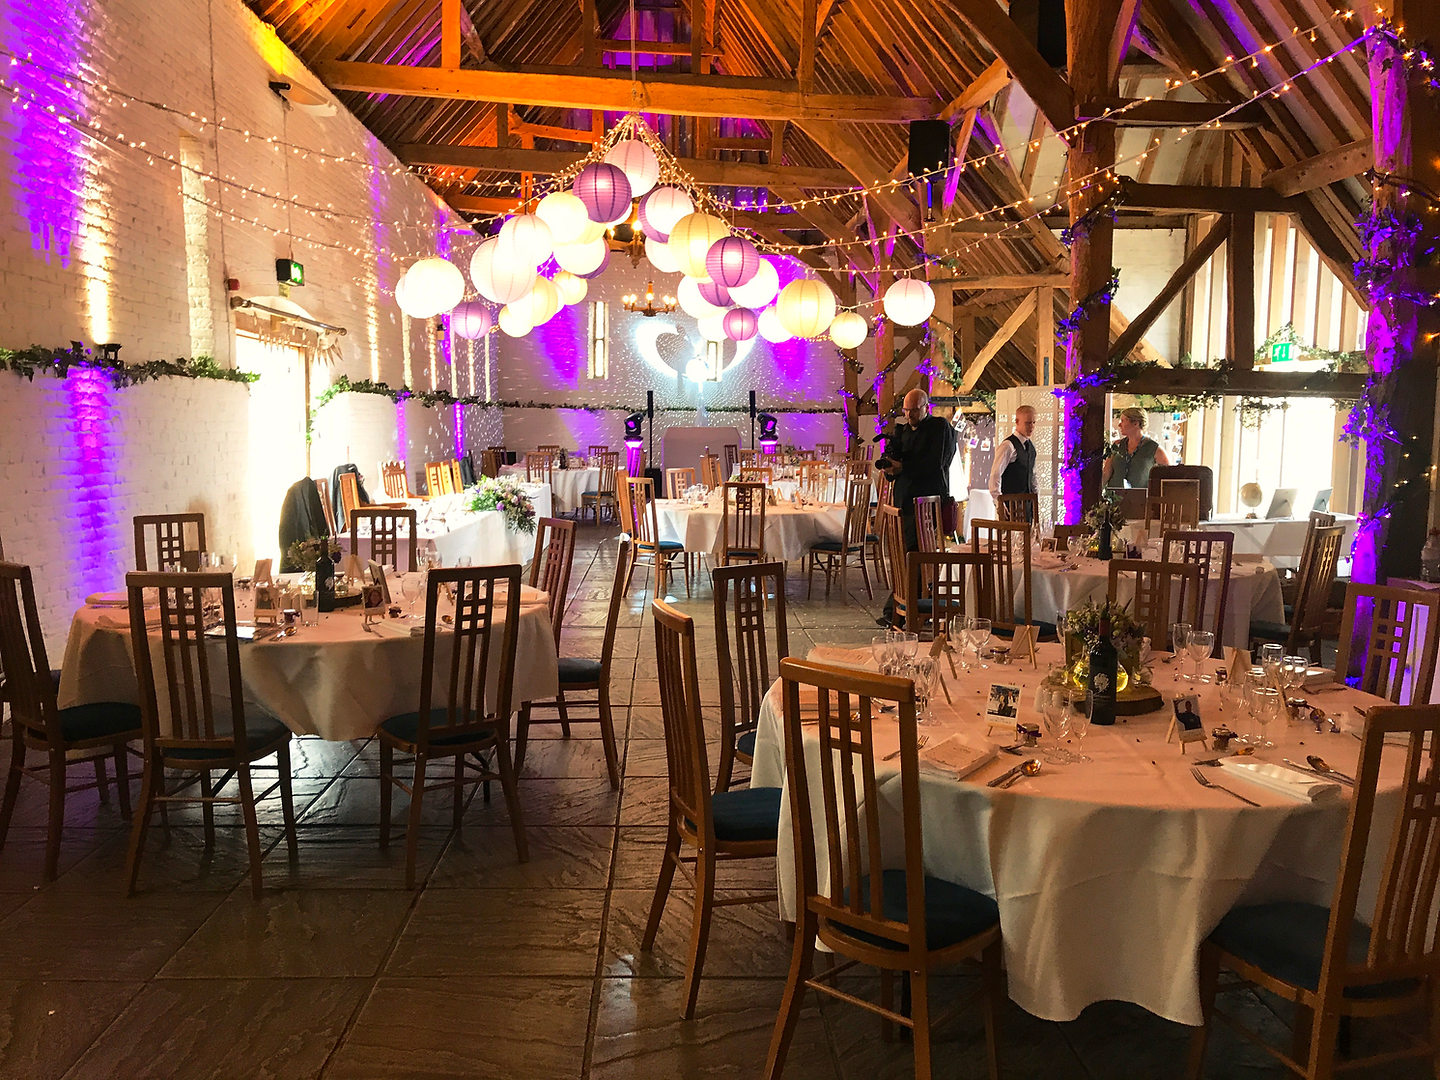 Up lighting at Ufton Court